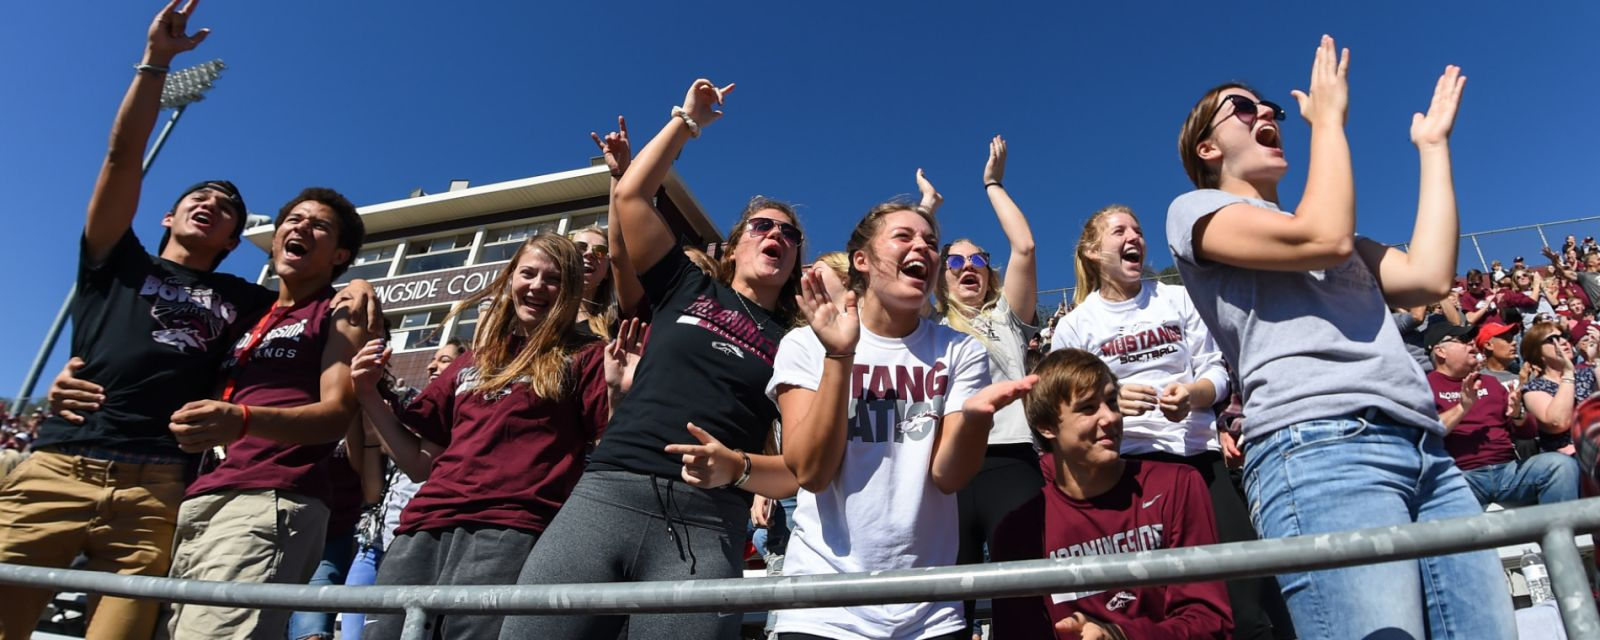 Morningside students cheering